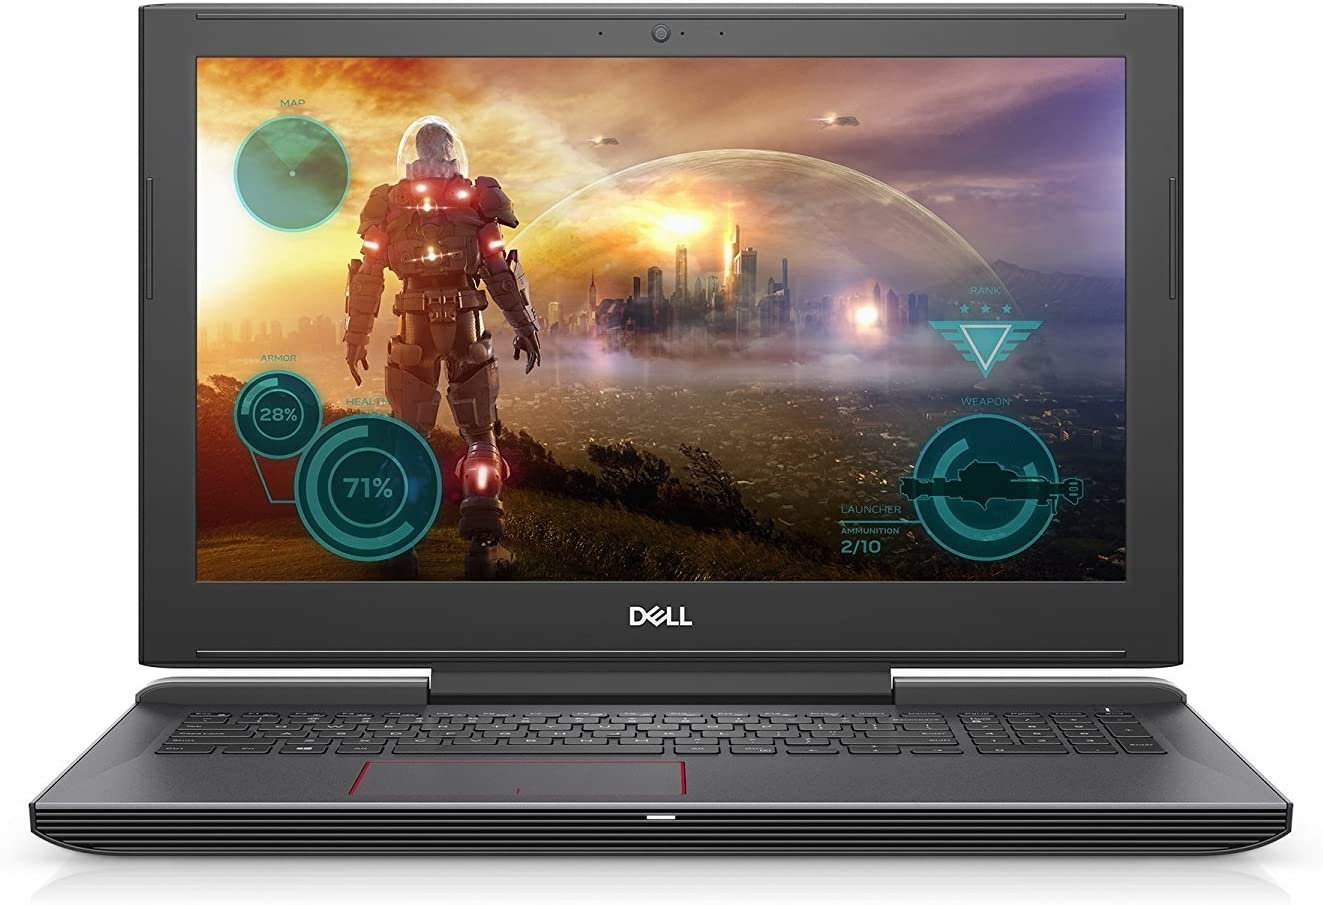 Dell Inspiron 15 7577 Gaming Laptop with Windows VR (15.6 Inch FHD Display, Intel Core i5-7300HQ 2.5GHz, 8GB RAM, 256GB SSD + 1TB HDD, NVIDIA GTX 1060 6GB, Windows 10)